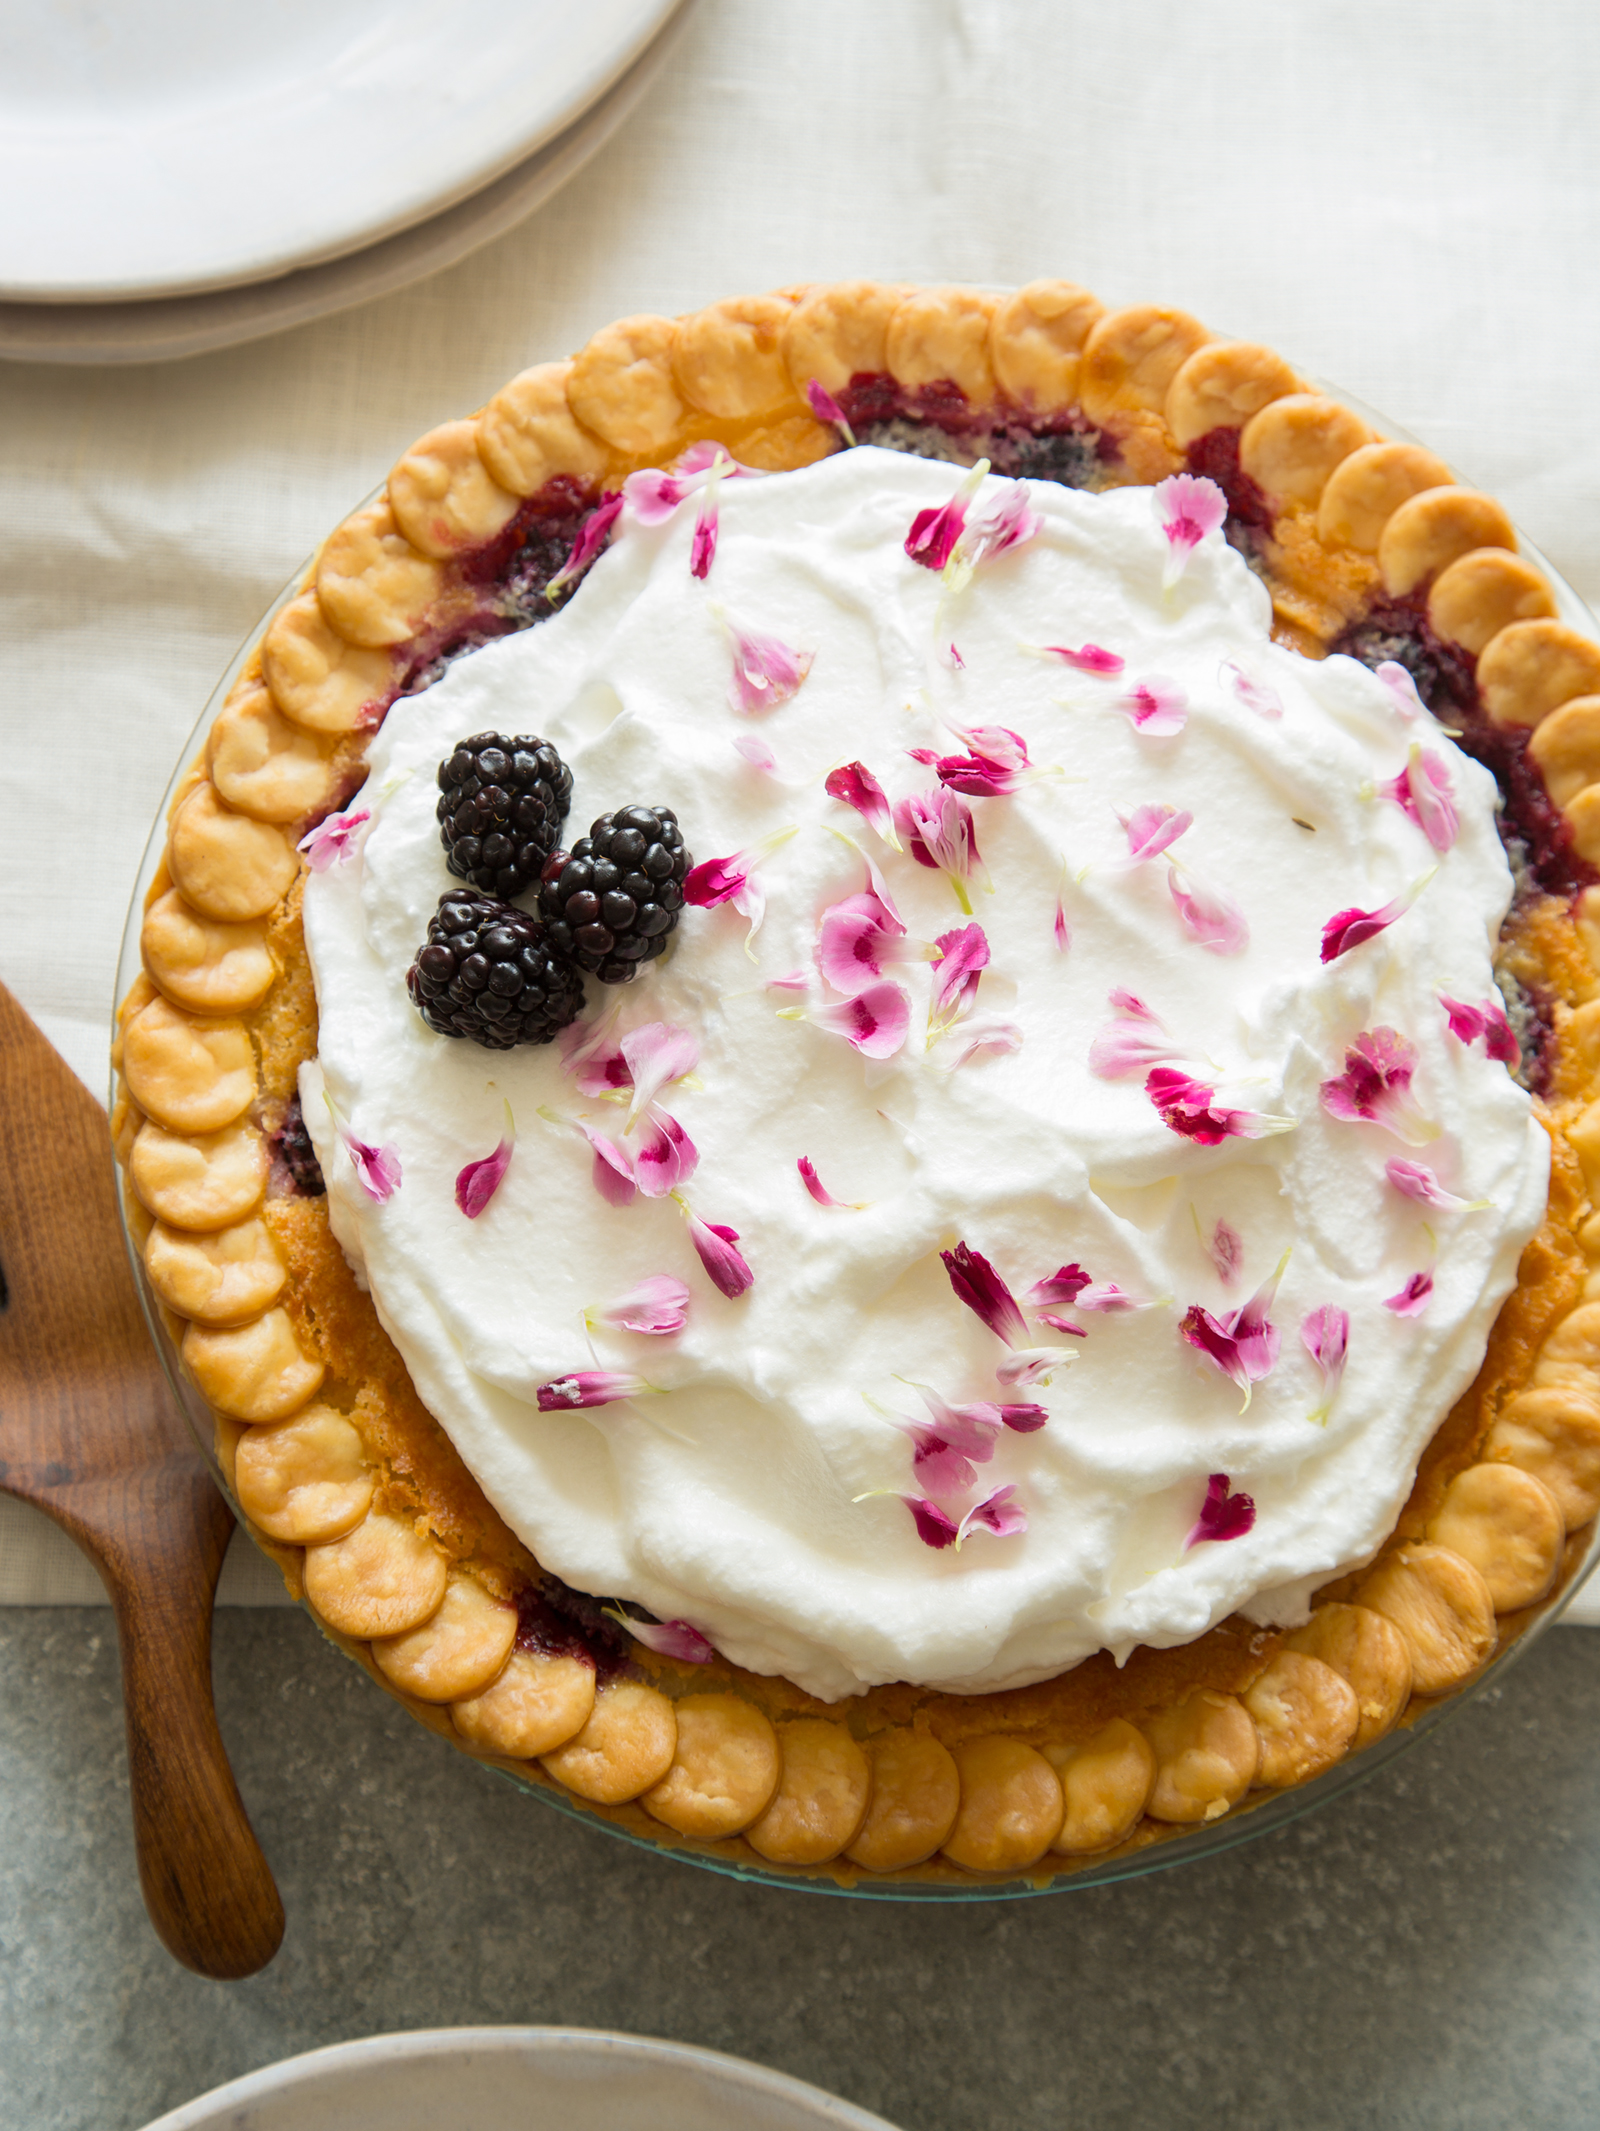 Buttermilk and Blackberry Pie | Spoon Fork Bacon